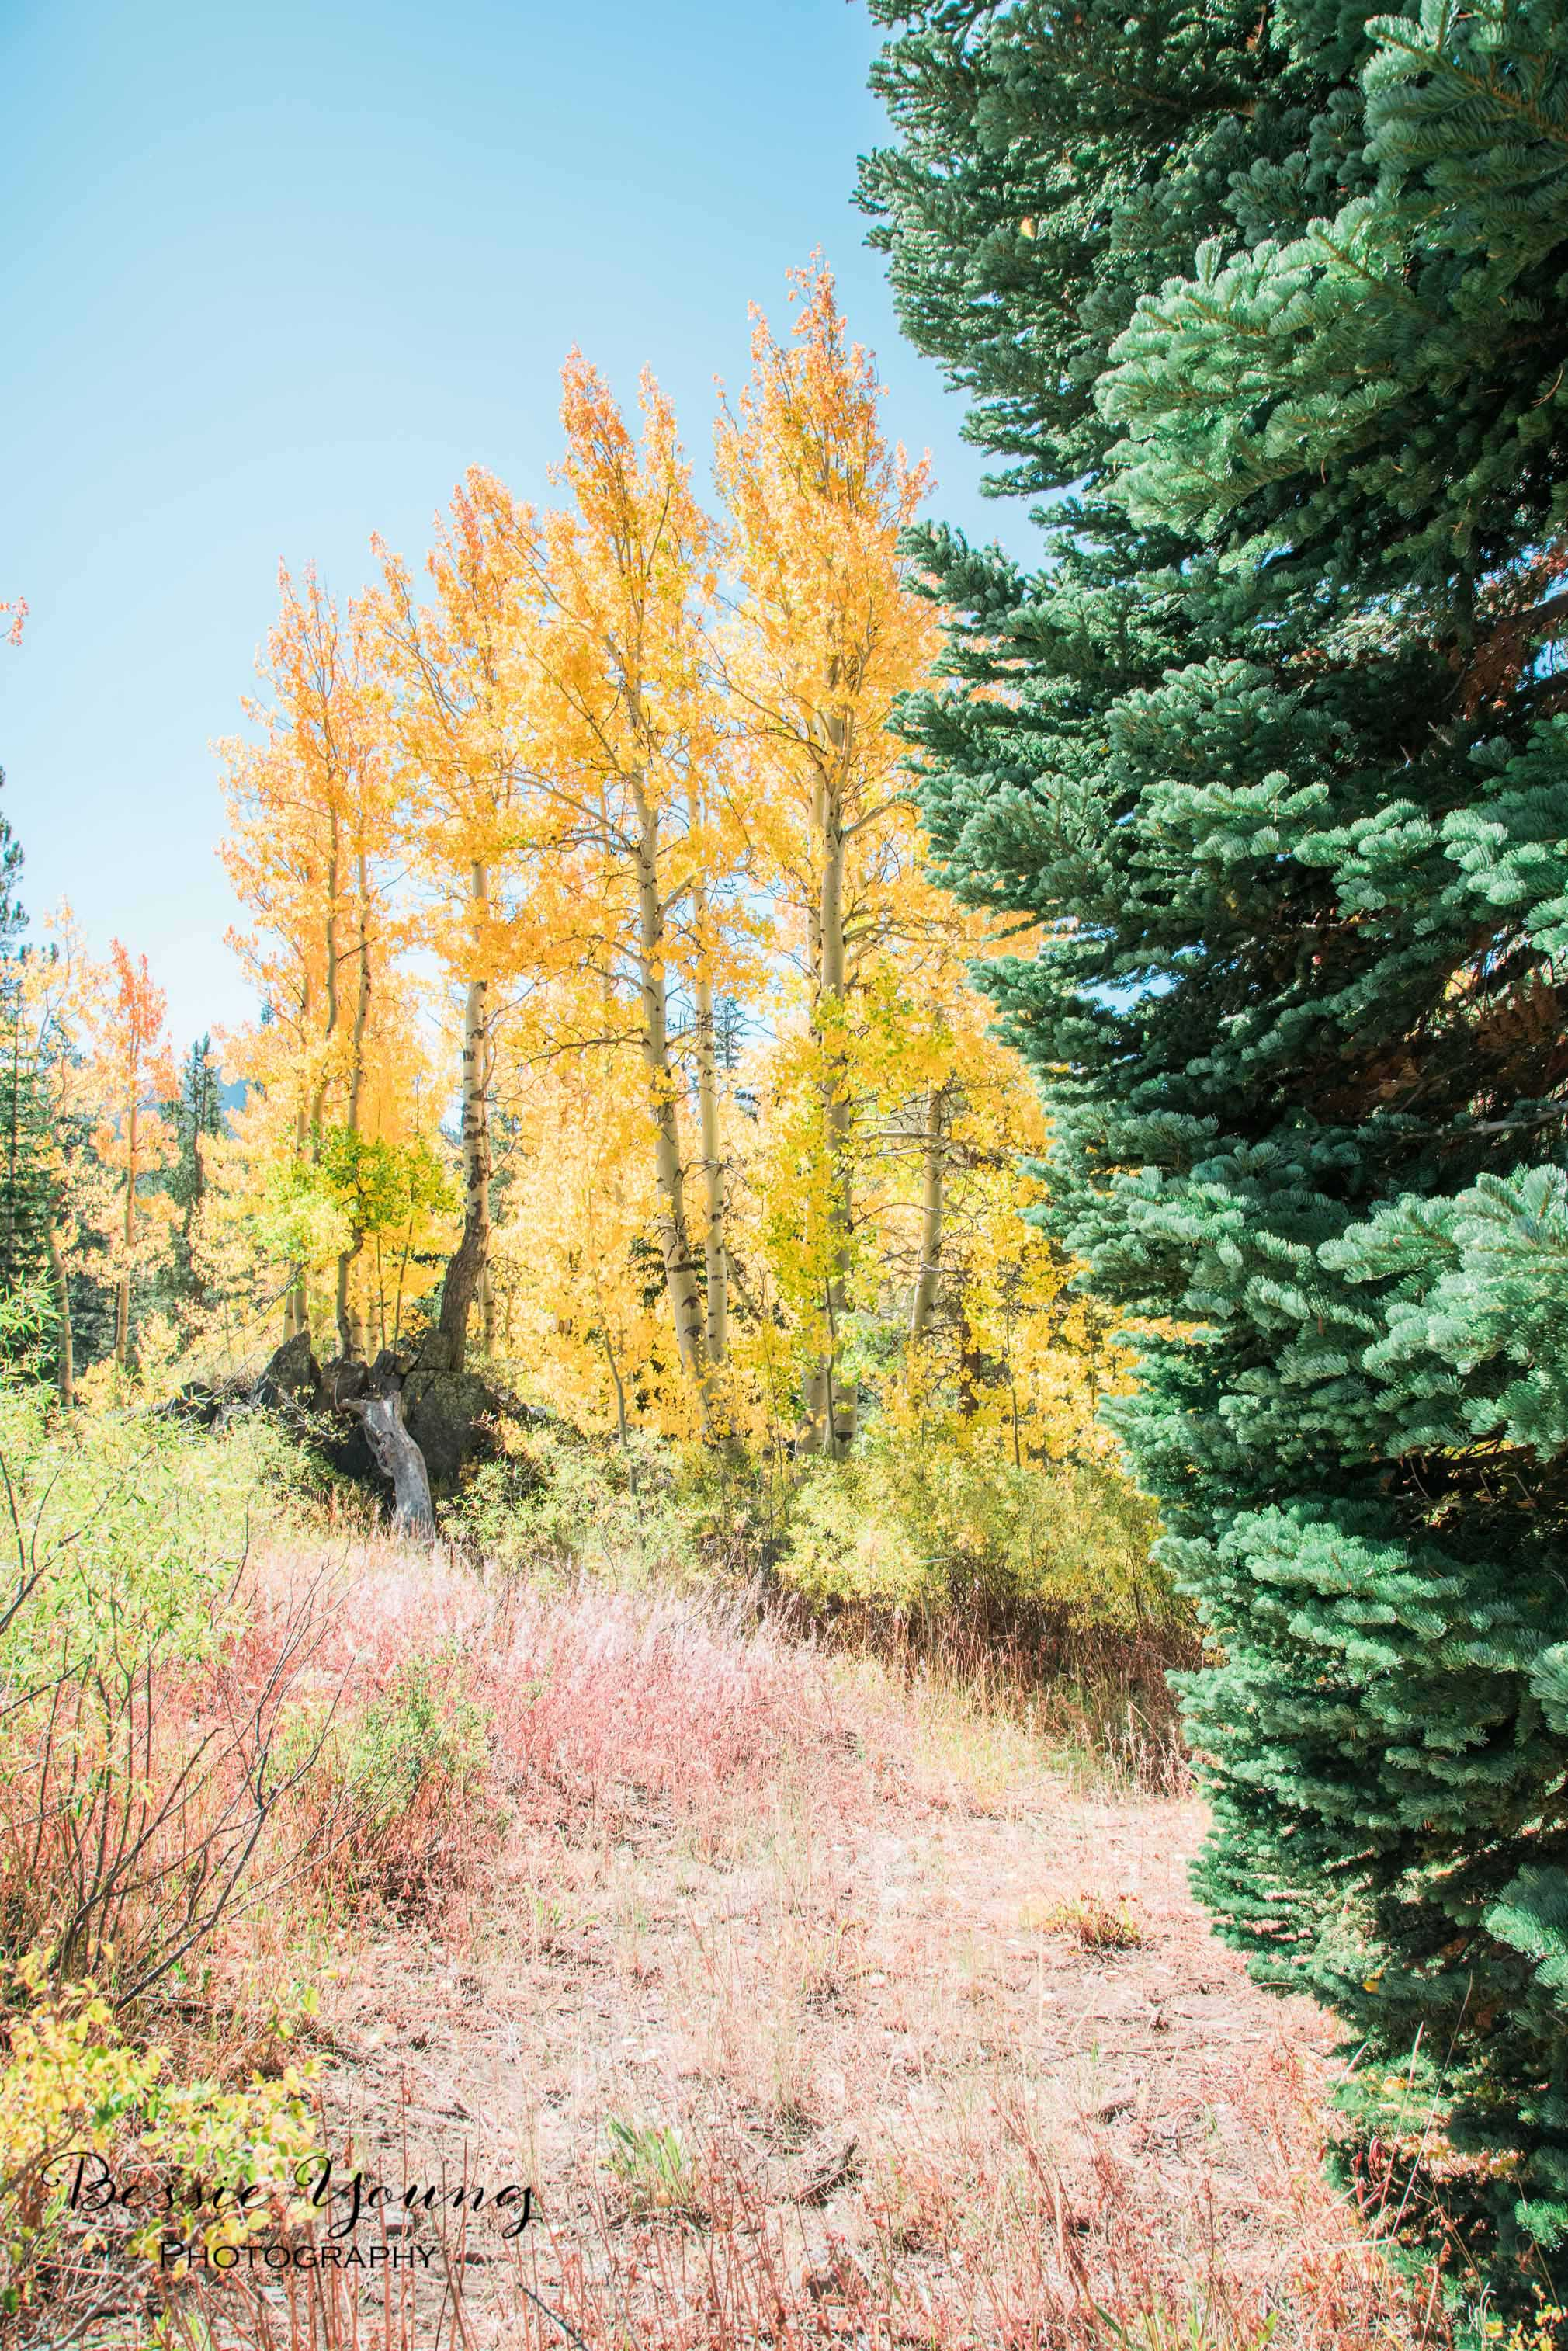 Hope Valley October 2016 - Bessie Young Photography-12.jpg